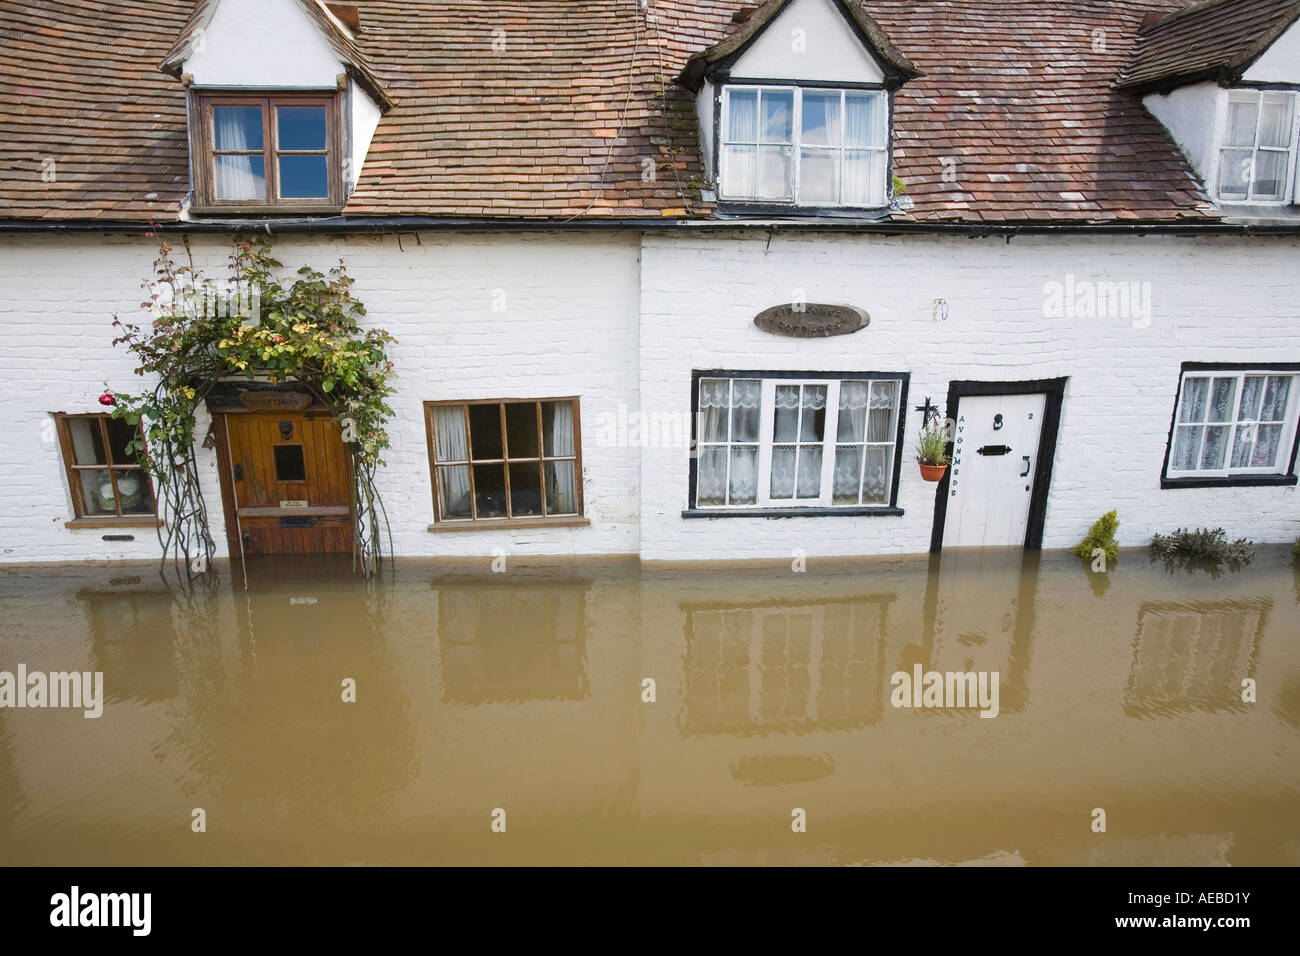 Old houses flooded in Tewkesbury - Stock Image